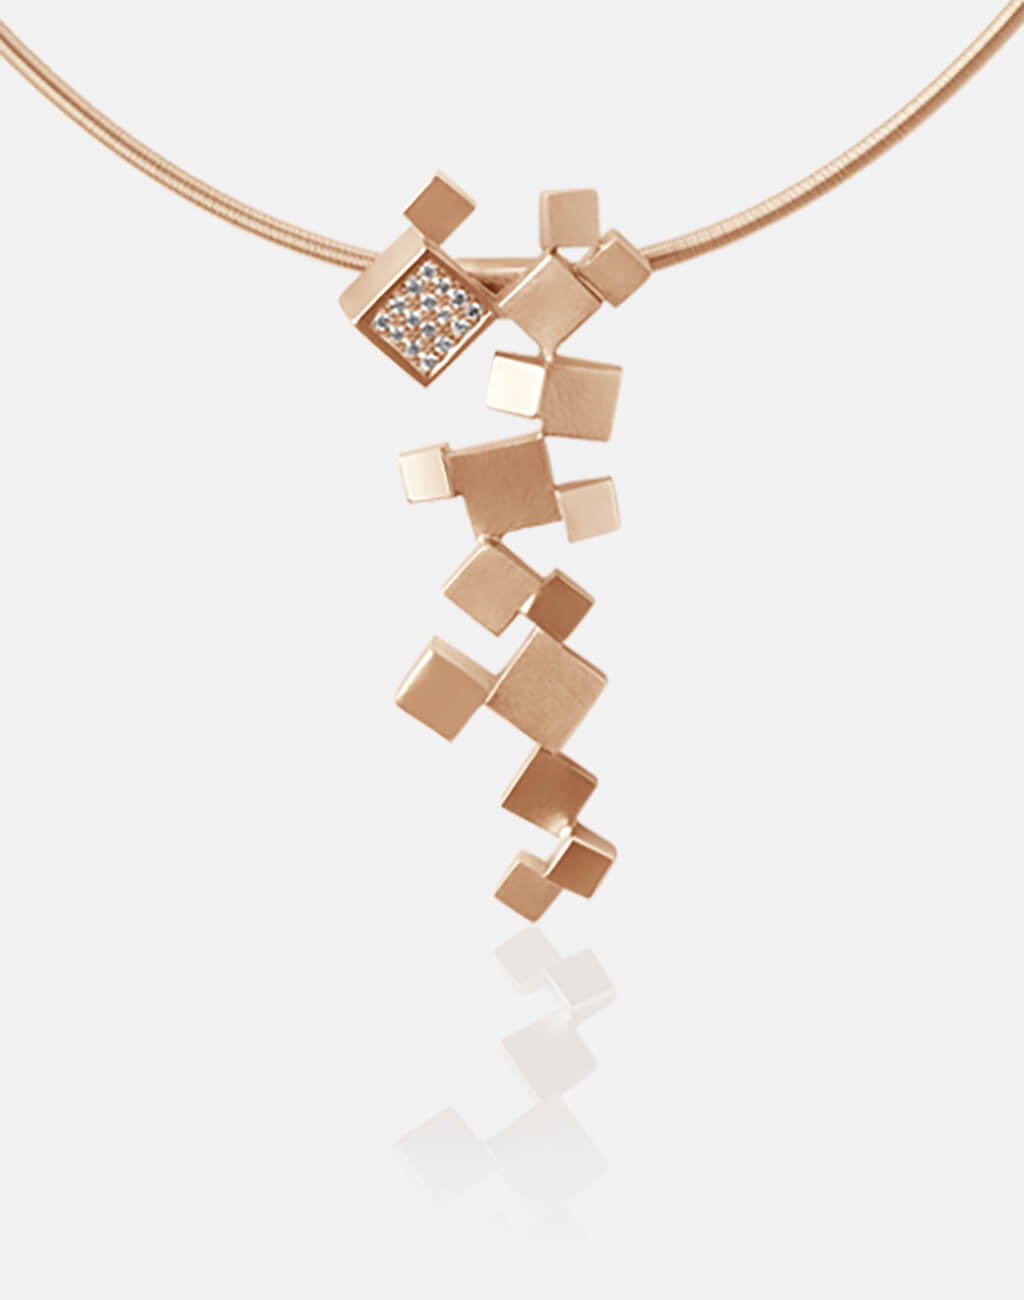 Quadroci | Collier, Kette, Kettenanhänger - 750 Roségold, Diamanten-Brillanten | necklace, pendant - 18kt rose gold, diamonds | SYNO-Schmuck.com